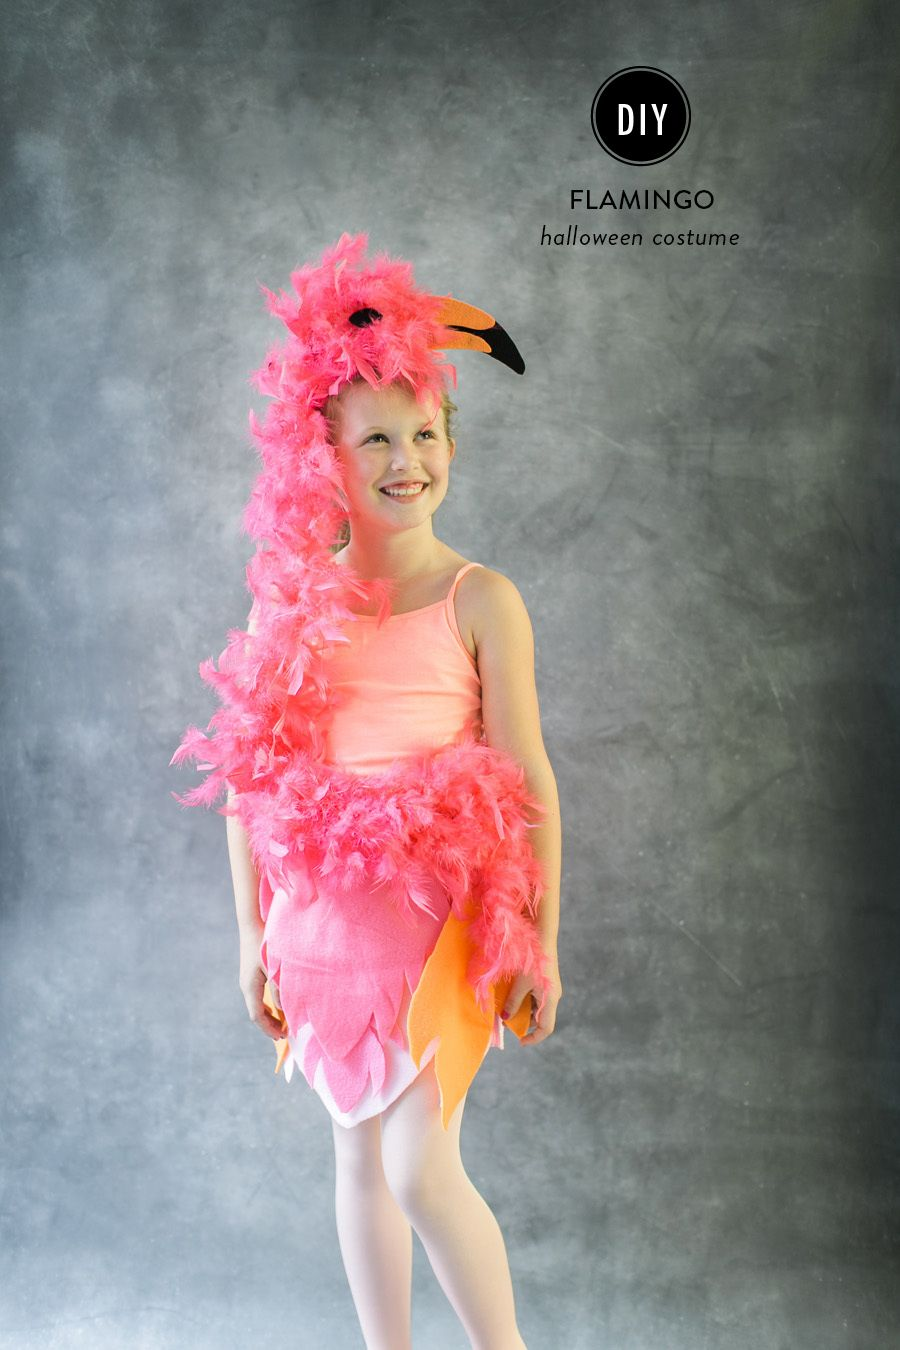 diy halloween costume flamingo d guisements flamants. Black Bedroom Furniture Sets. Home Design Ideas